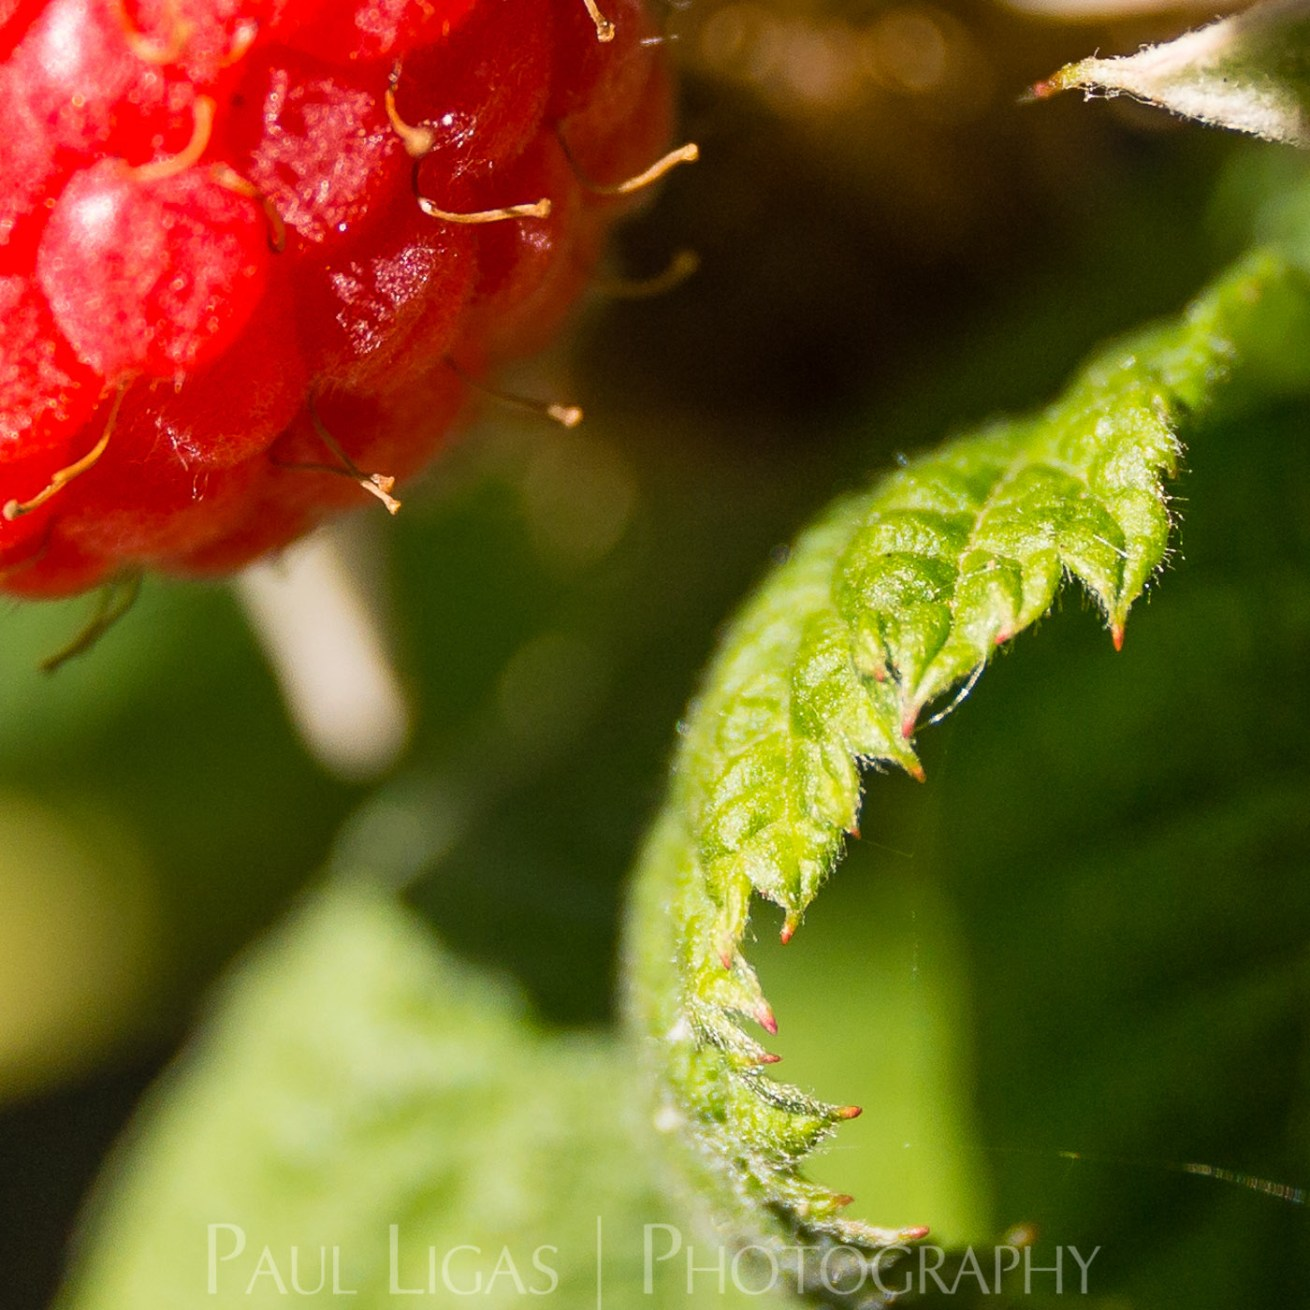 Raspberry farming agriculture photographer photography Herefordshire 0030